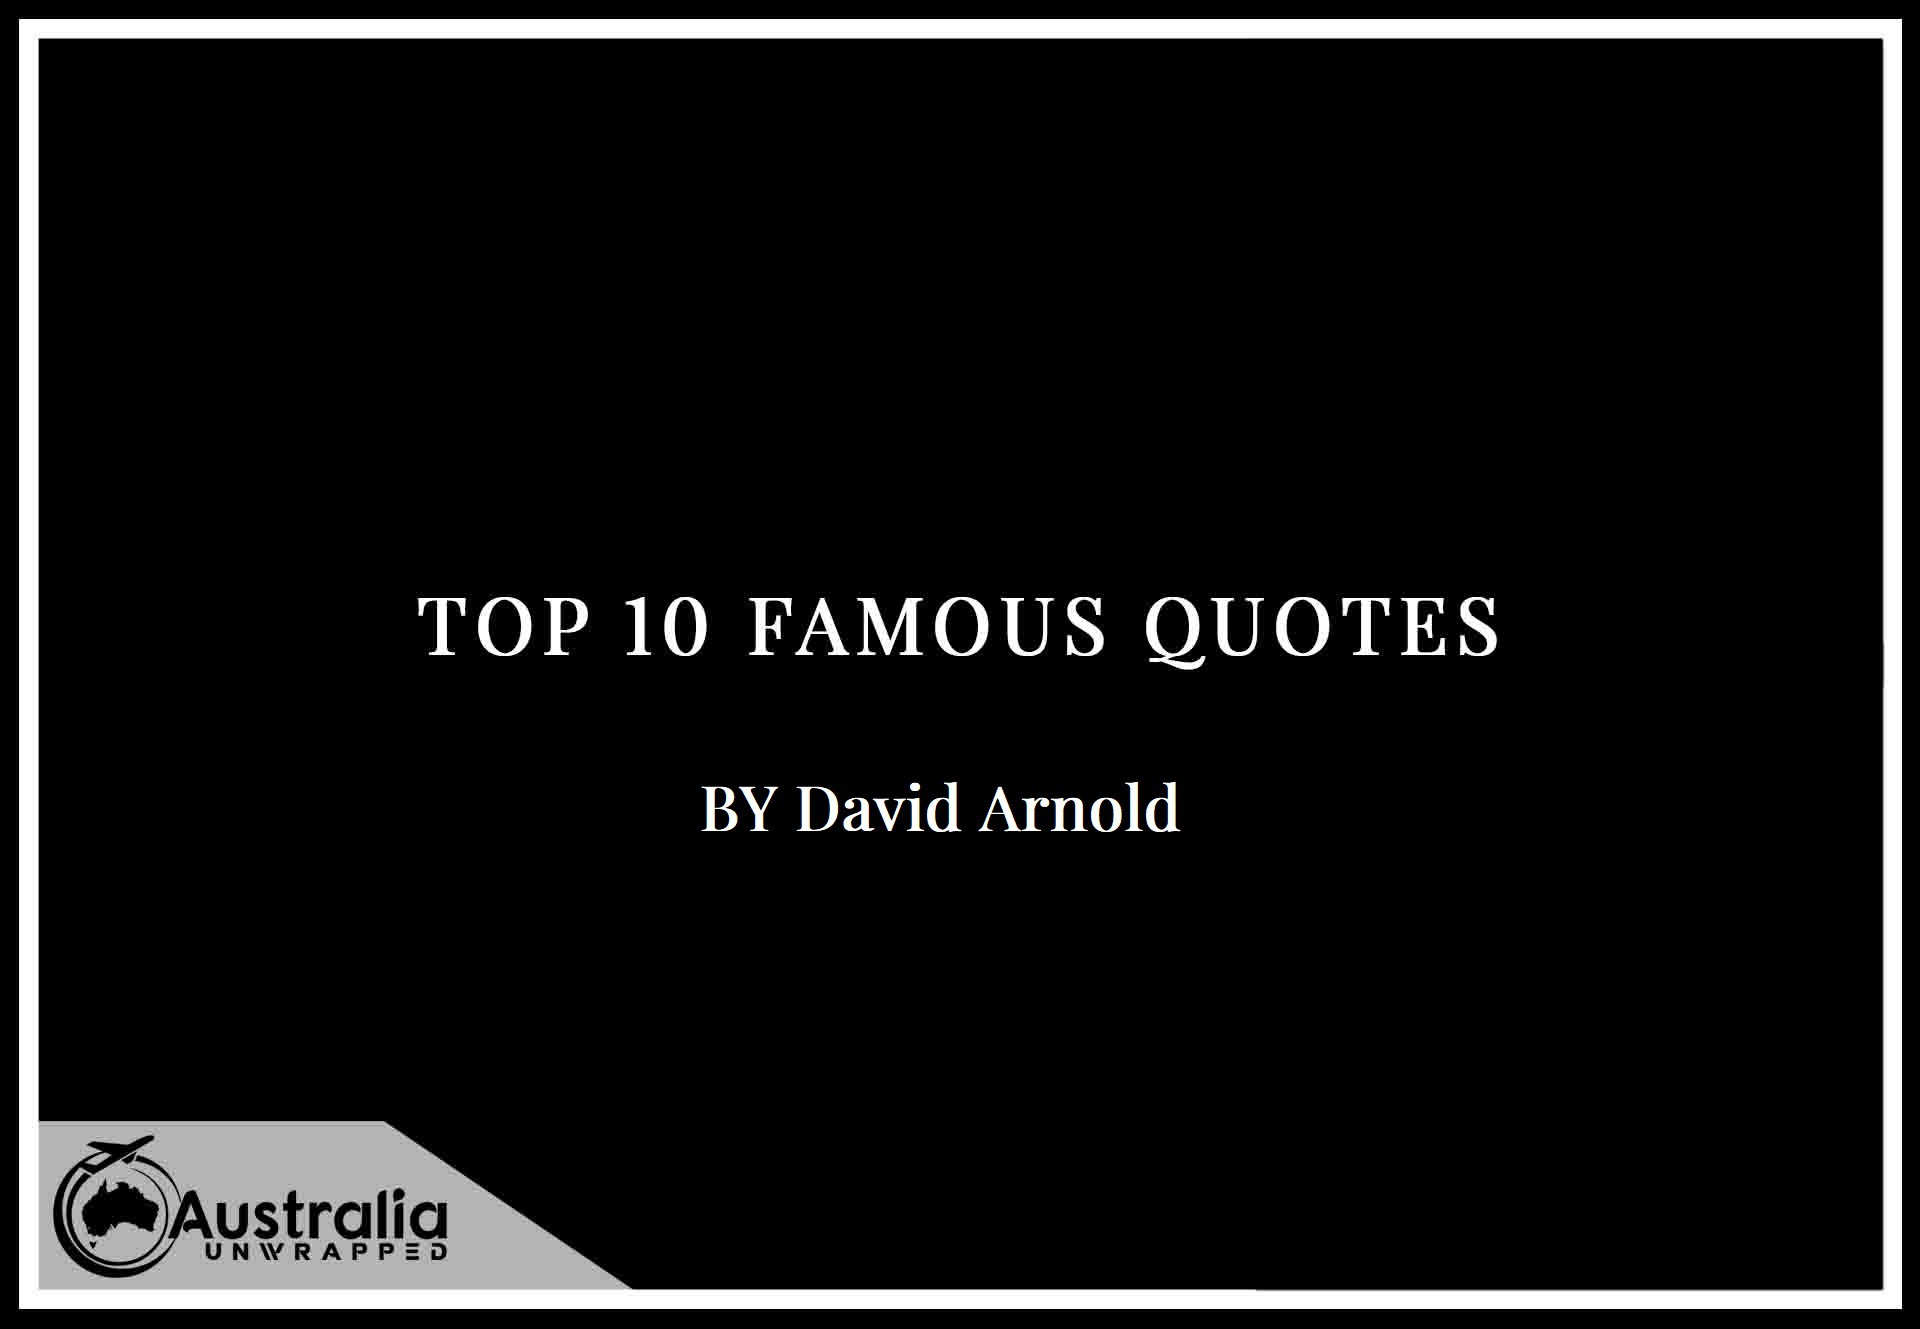 Top 10 Famous Quotes by Author David Arnold